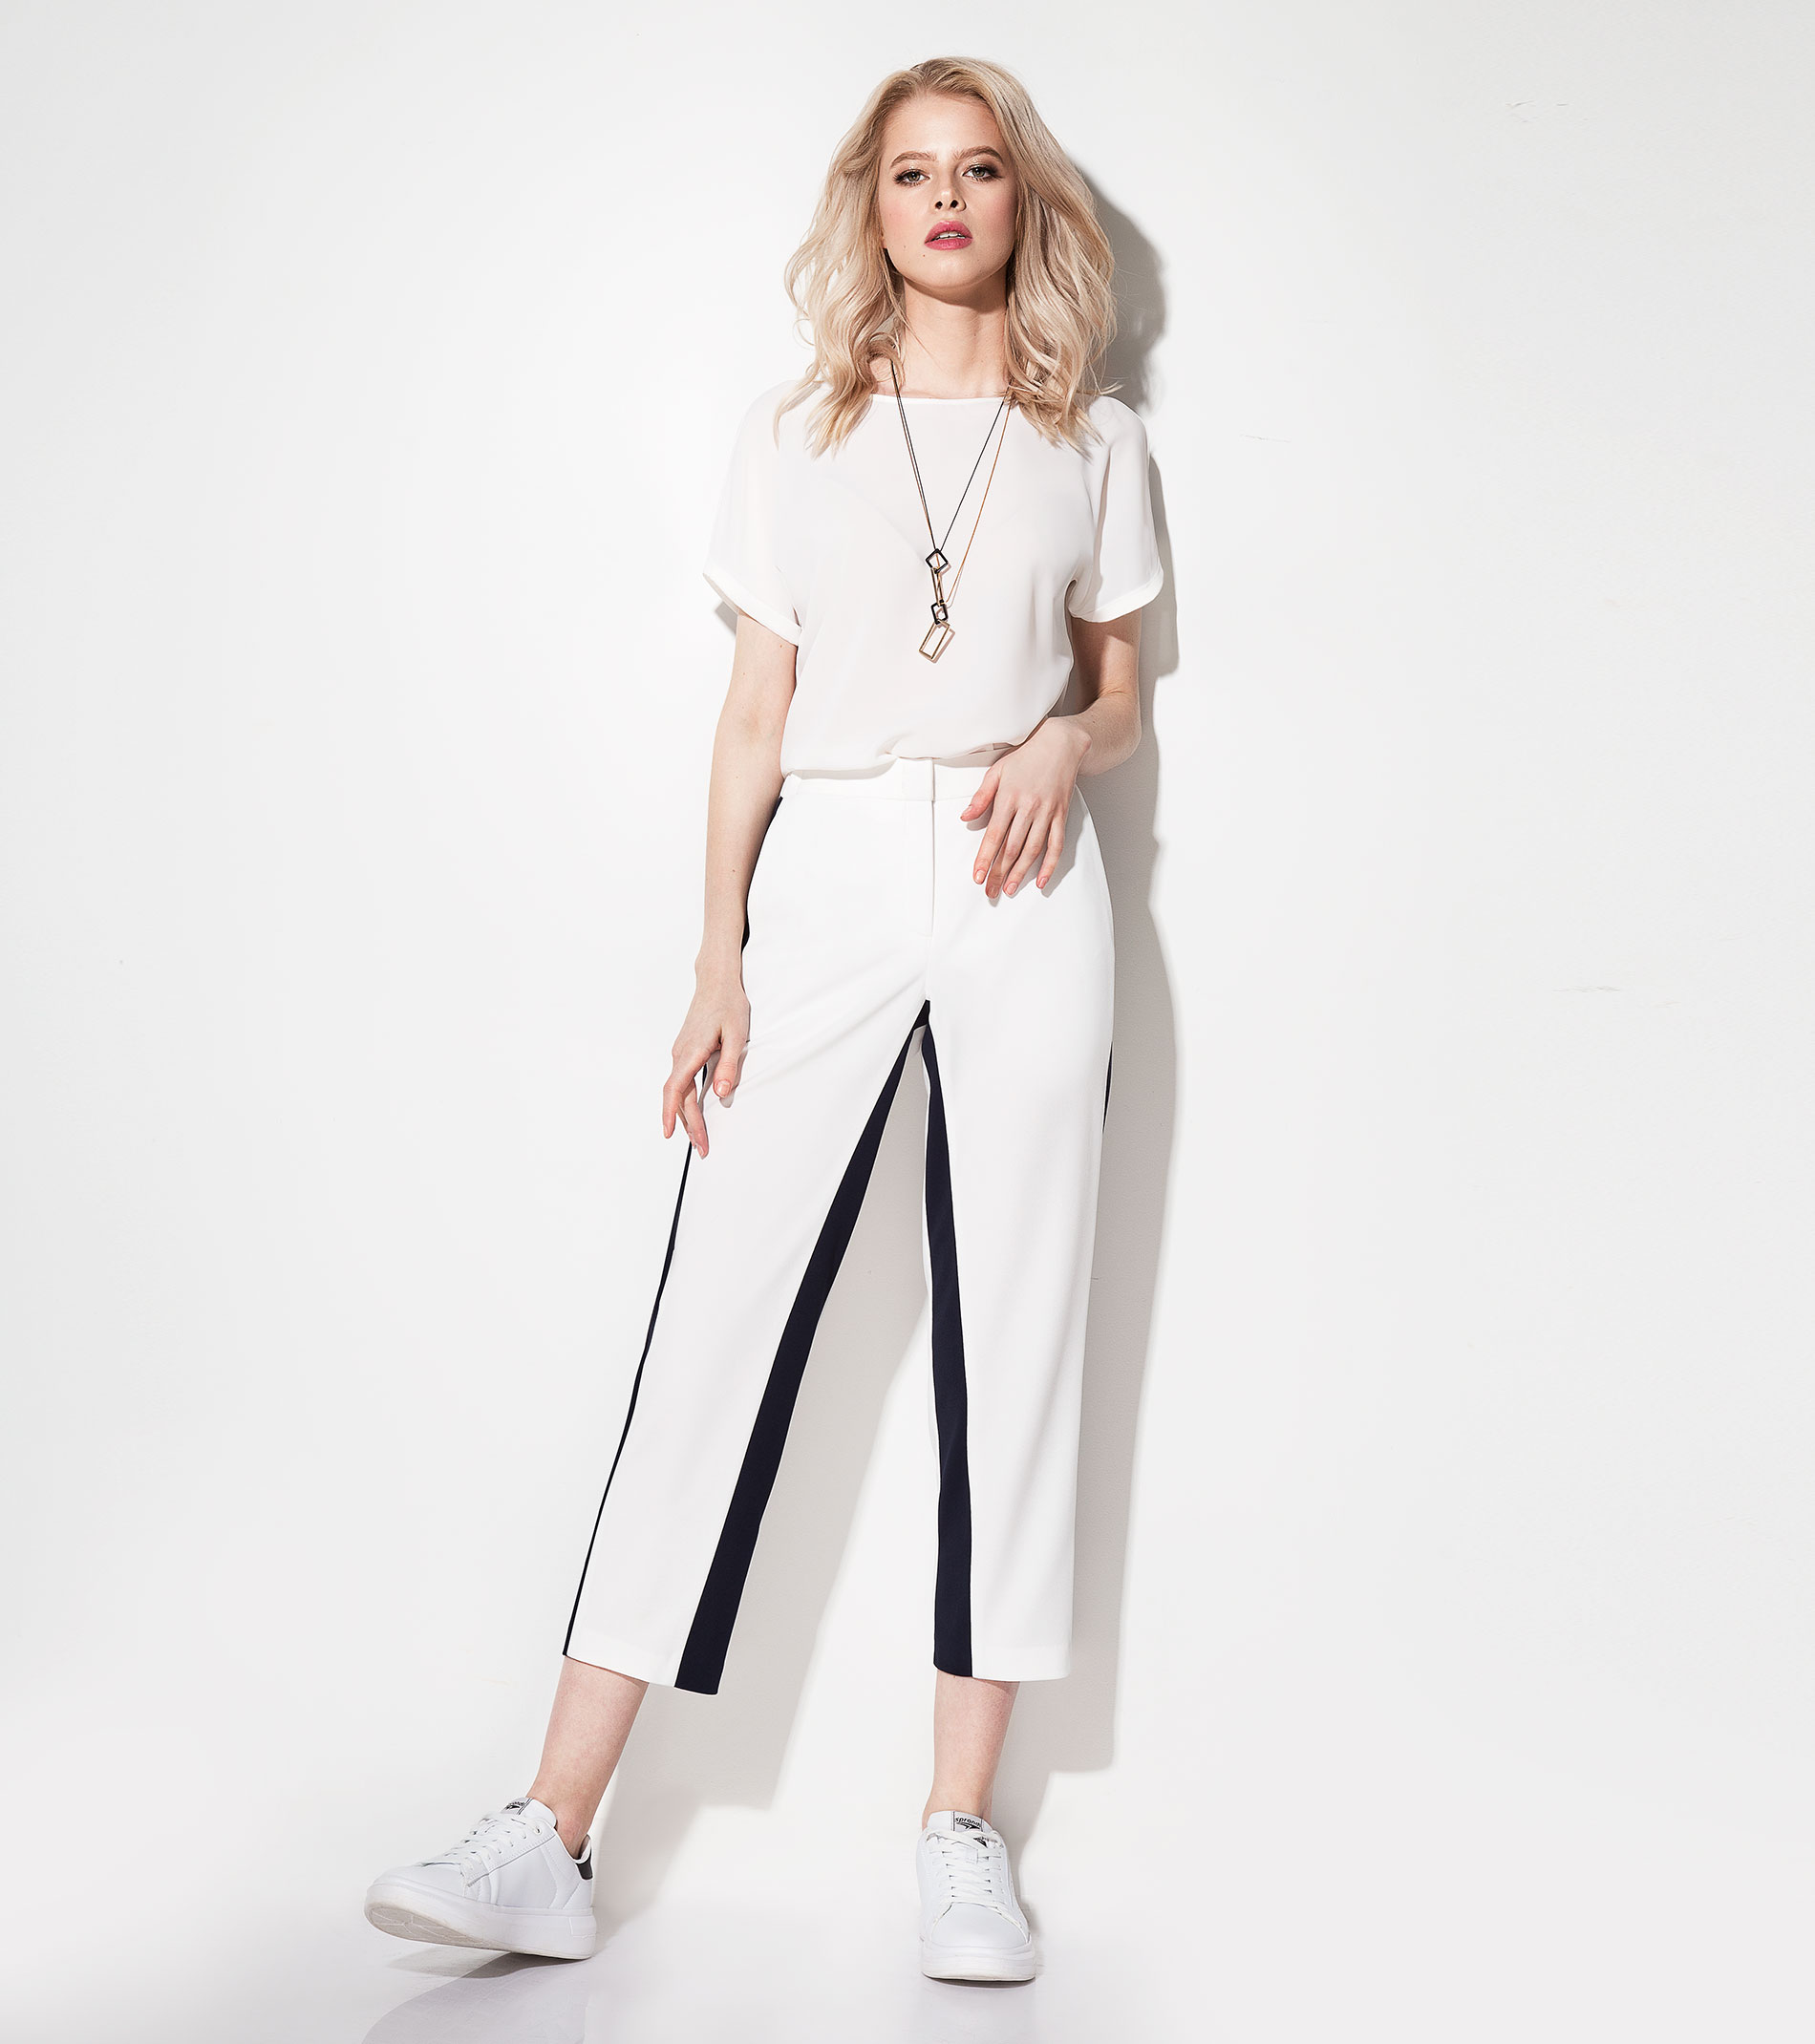 Women's trousers 198460